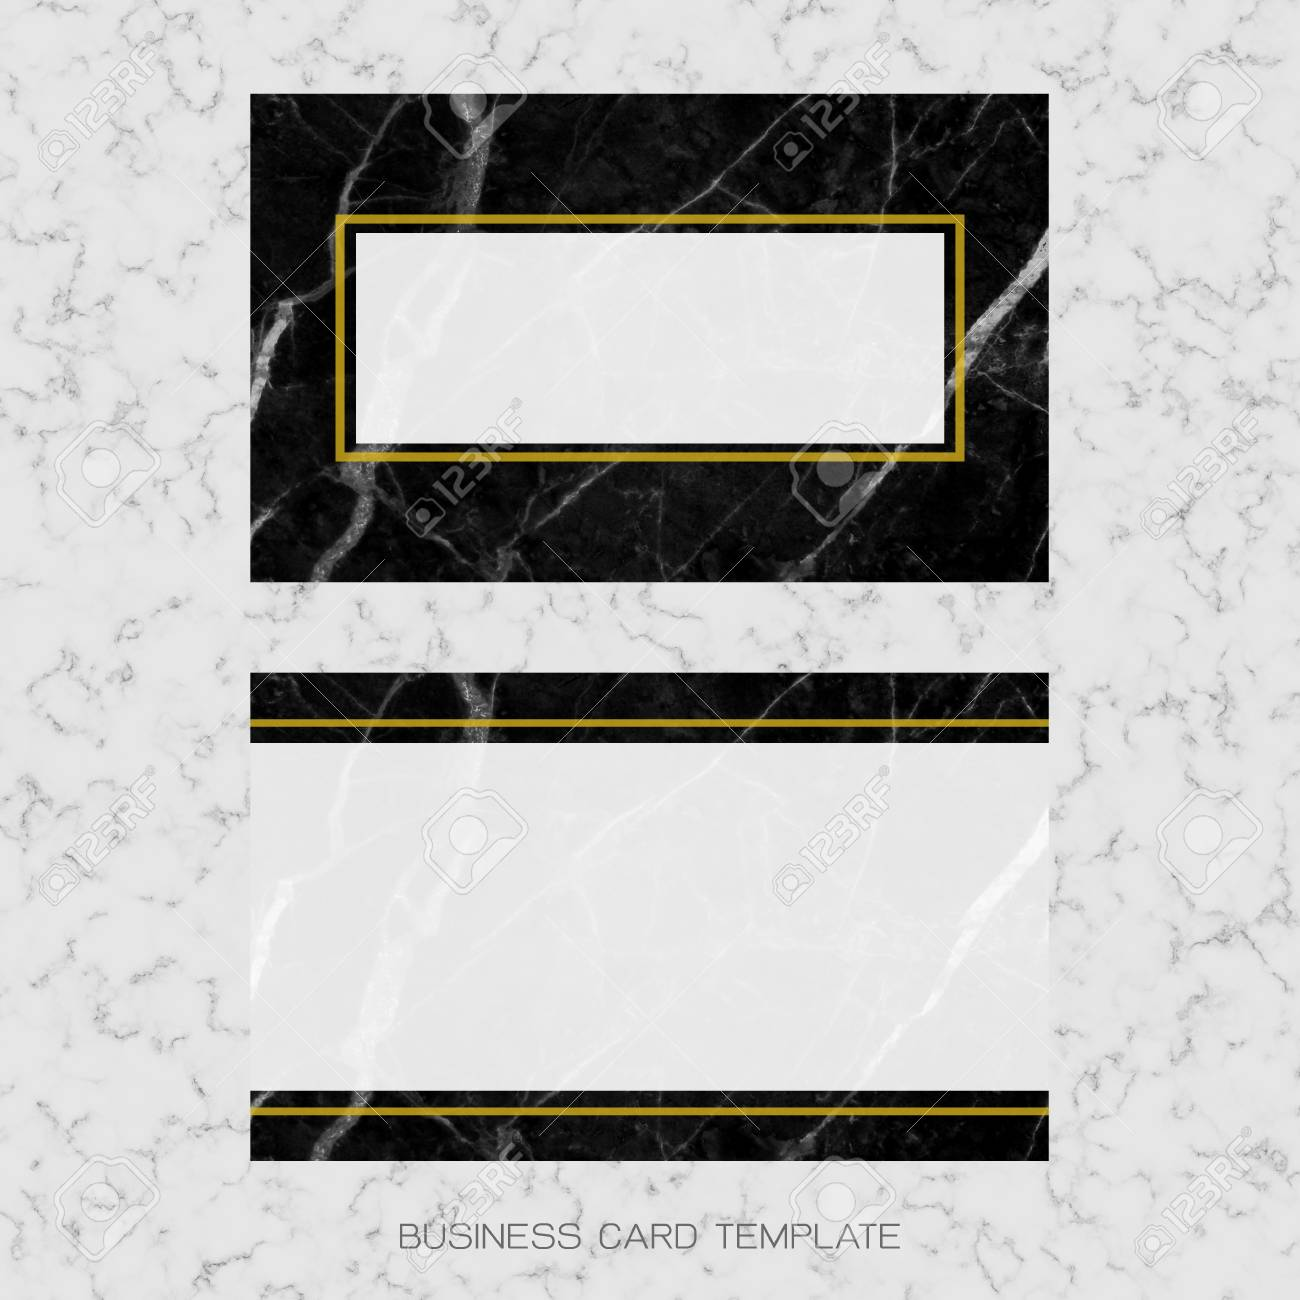 modern business card layout template black and golden marble background for luxury design clipping